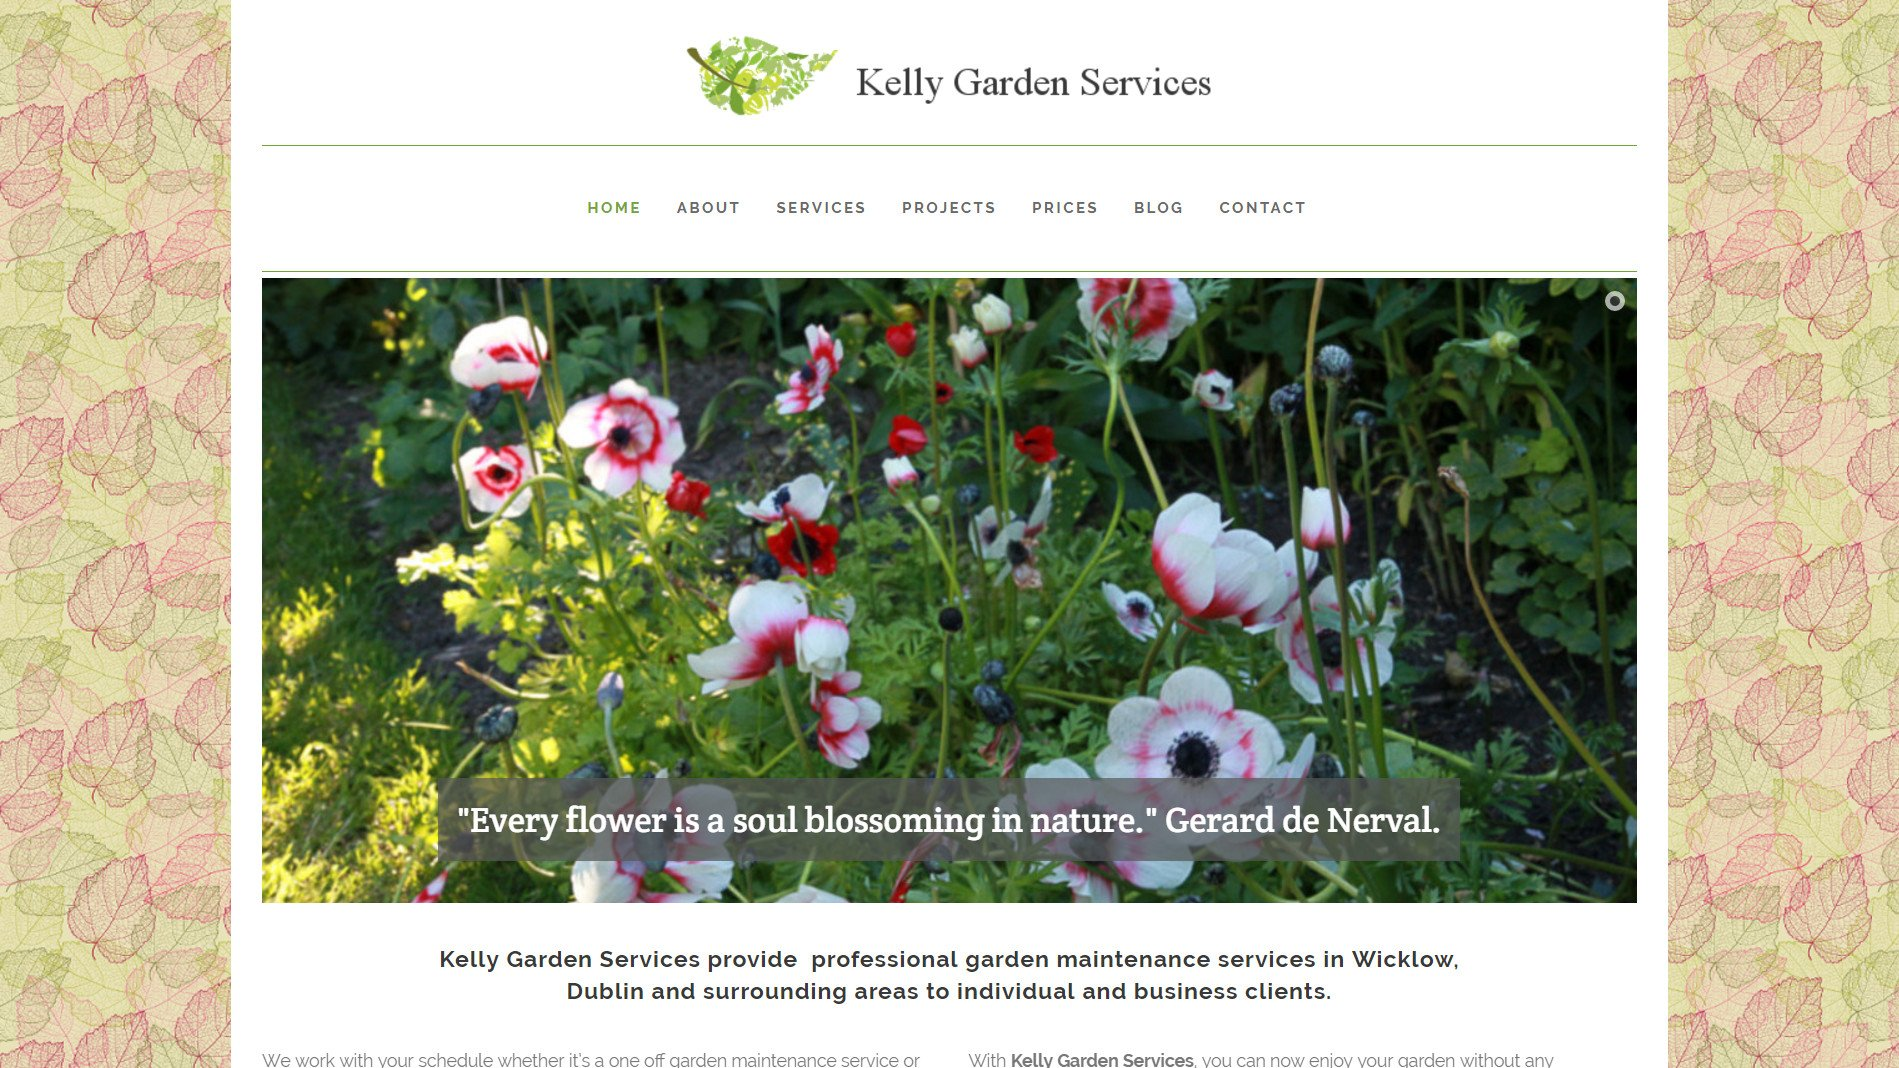 Kelly Gardening Services website designed by Ridge Design featured image